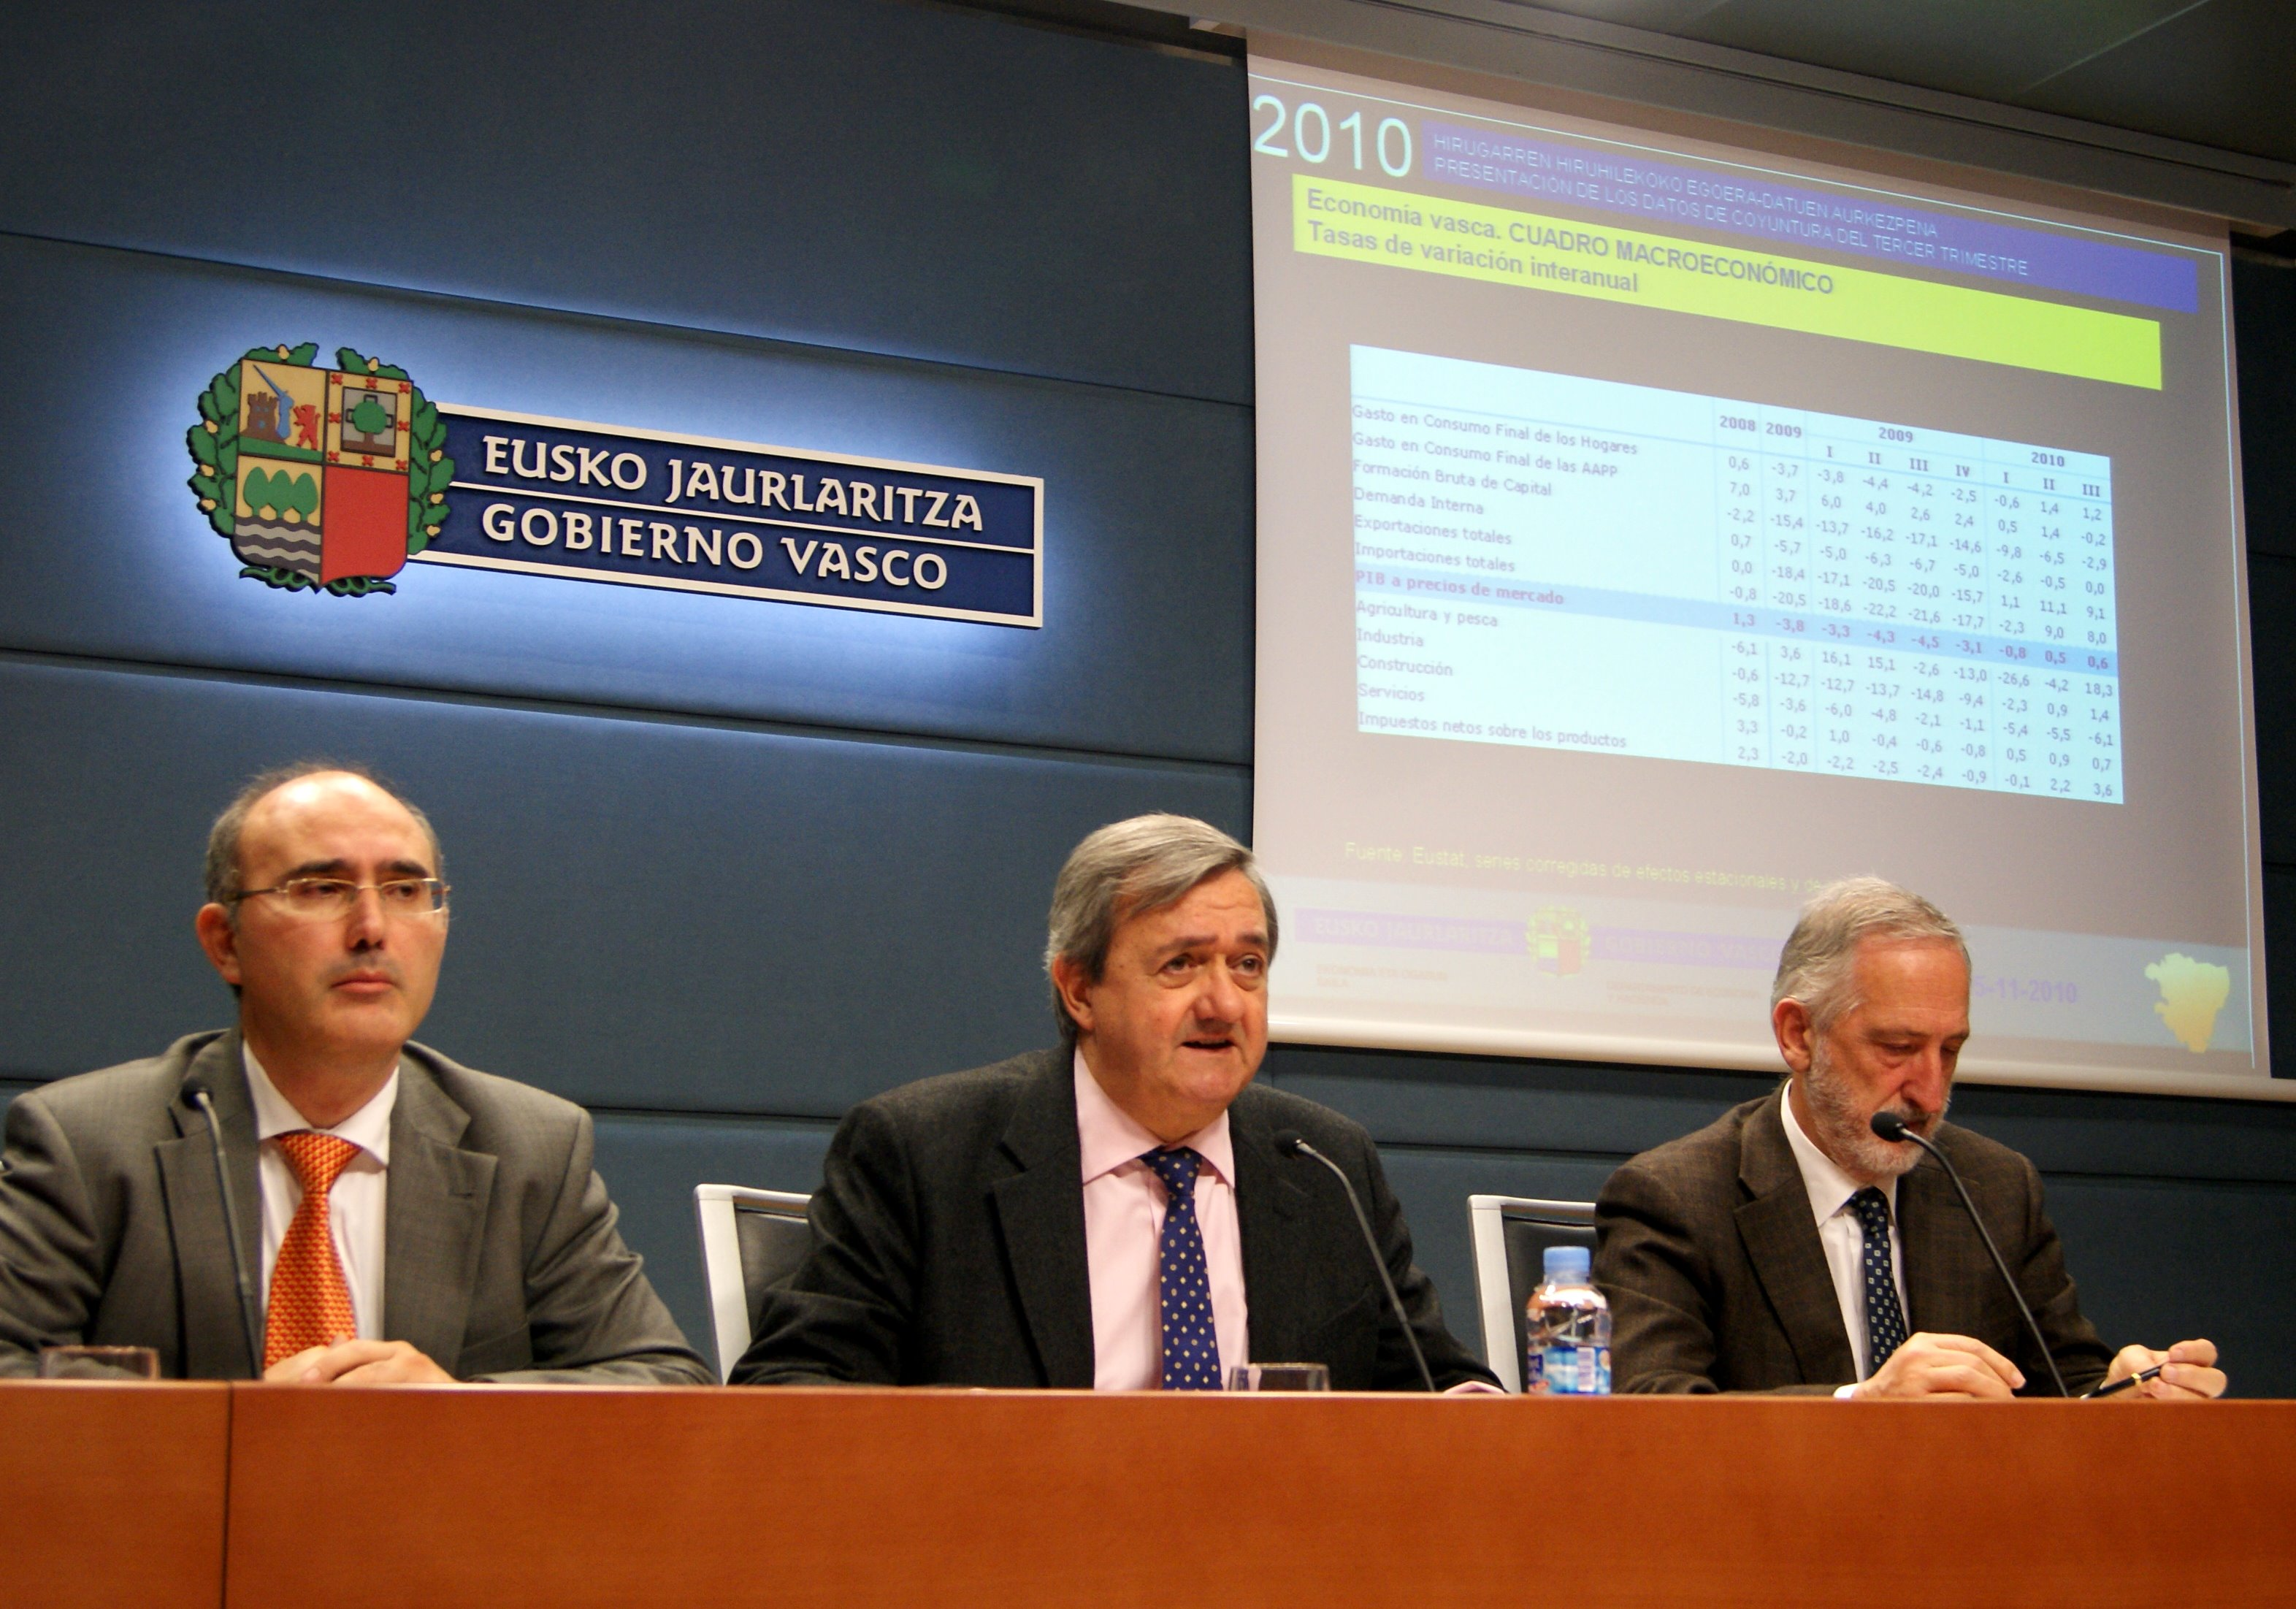 The Basque economy advances towards 0.6%, consolidating a steady growth rate and achieving the best registered figures in the last two years